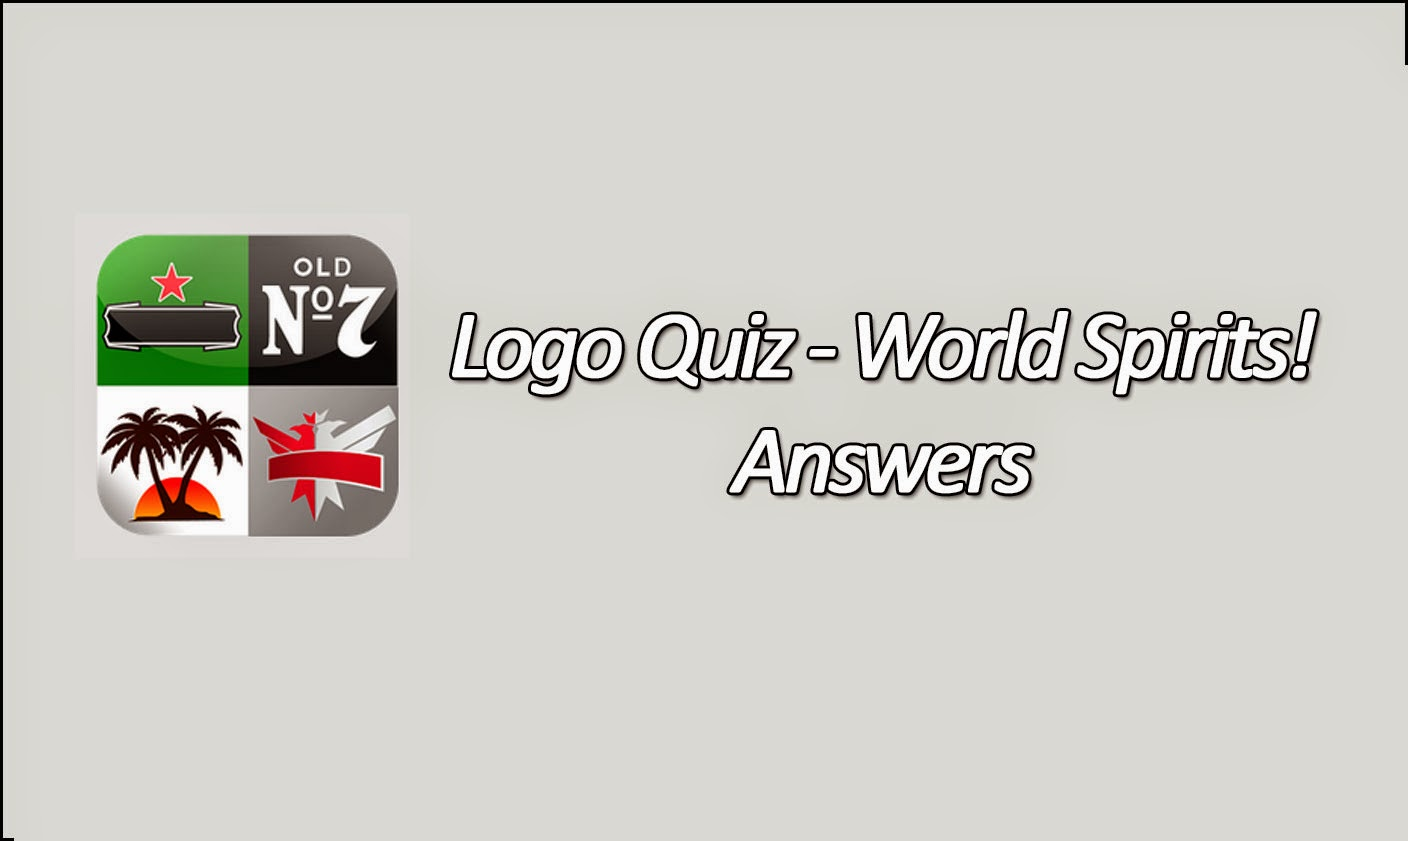 logo quiz world spirits is a puzzle game made by bubble quiz games